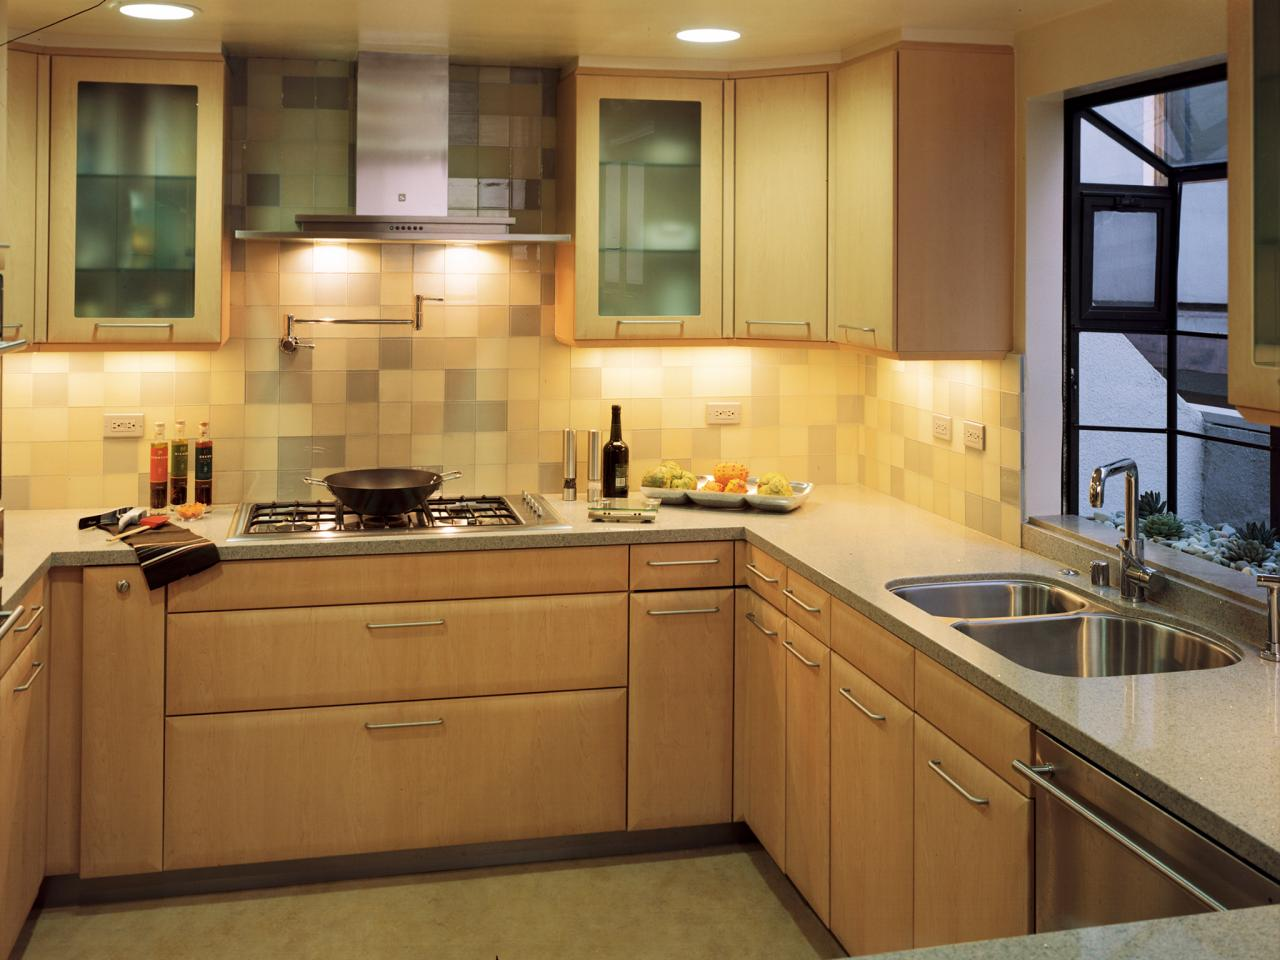 Kitchen Cabinet Prices Pictures Options Tips Ideas HGTV - What is the cost of a kitchen remodel